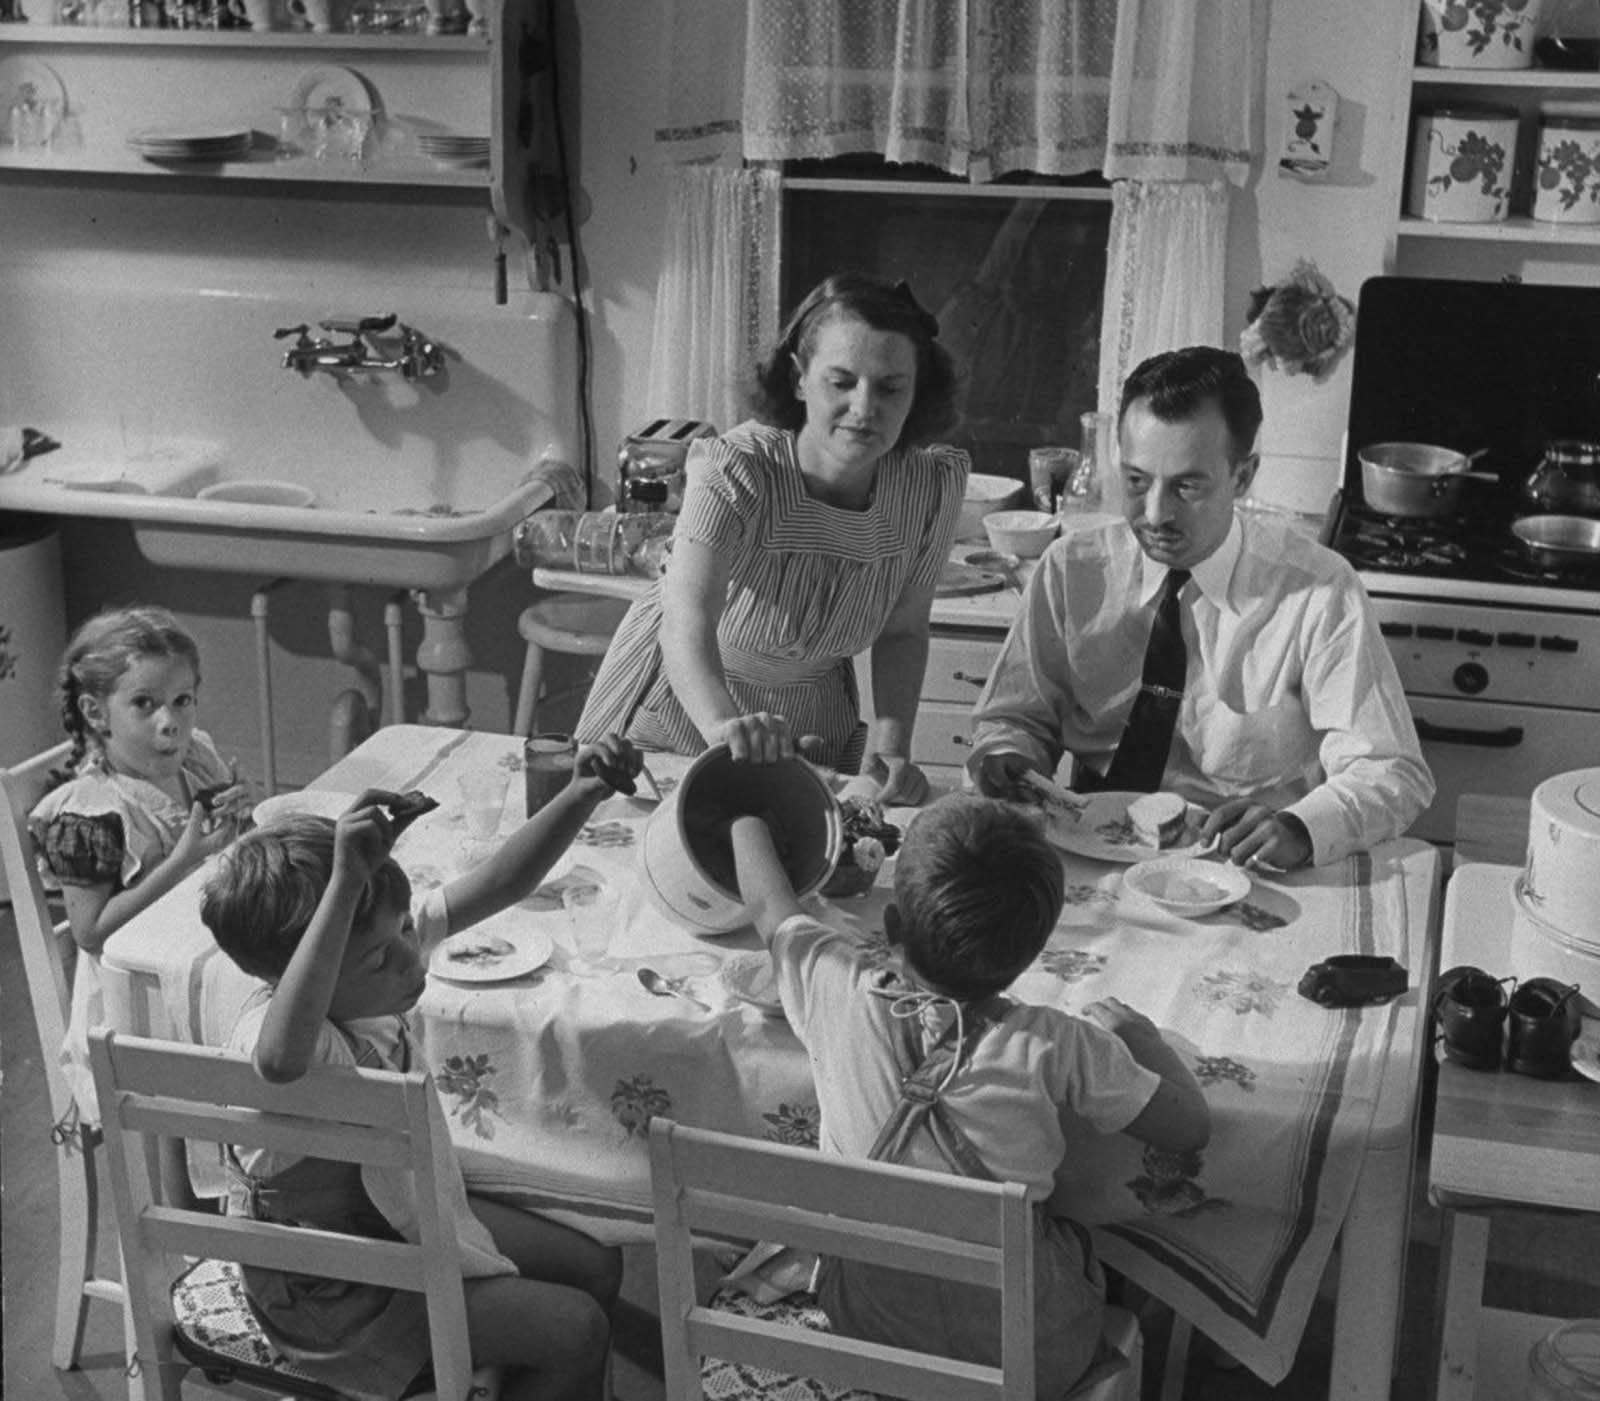 Jane serving lunch to her husband Gilbert, who has come home from the office a few minutes away, and her ever-present kids.